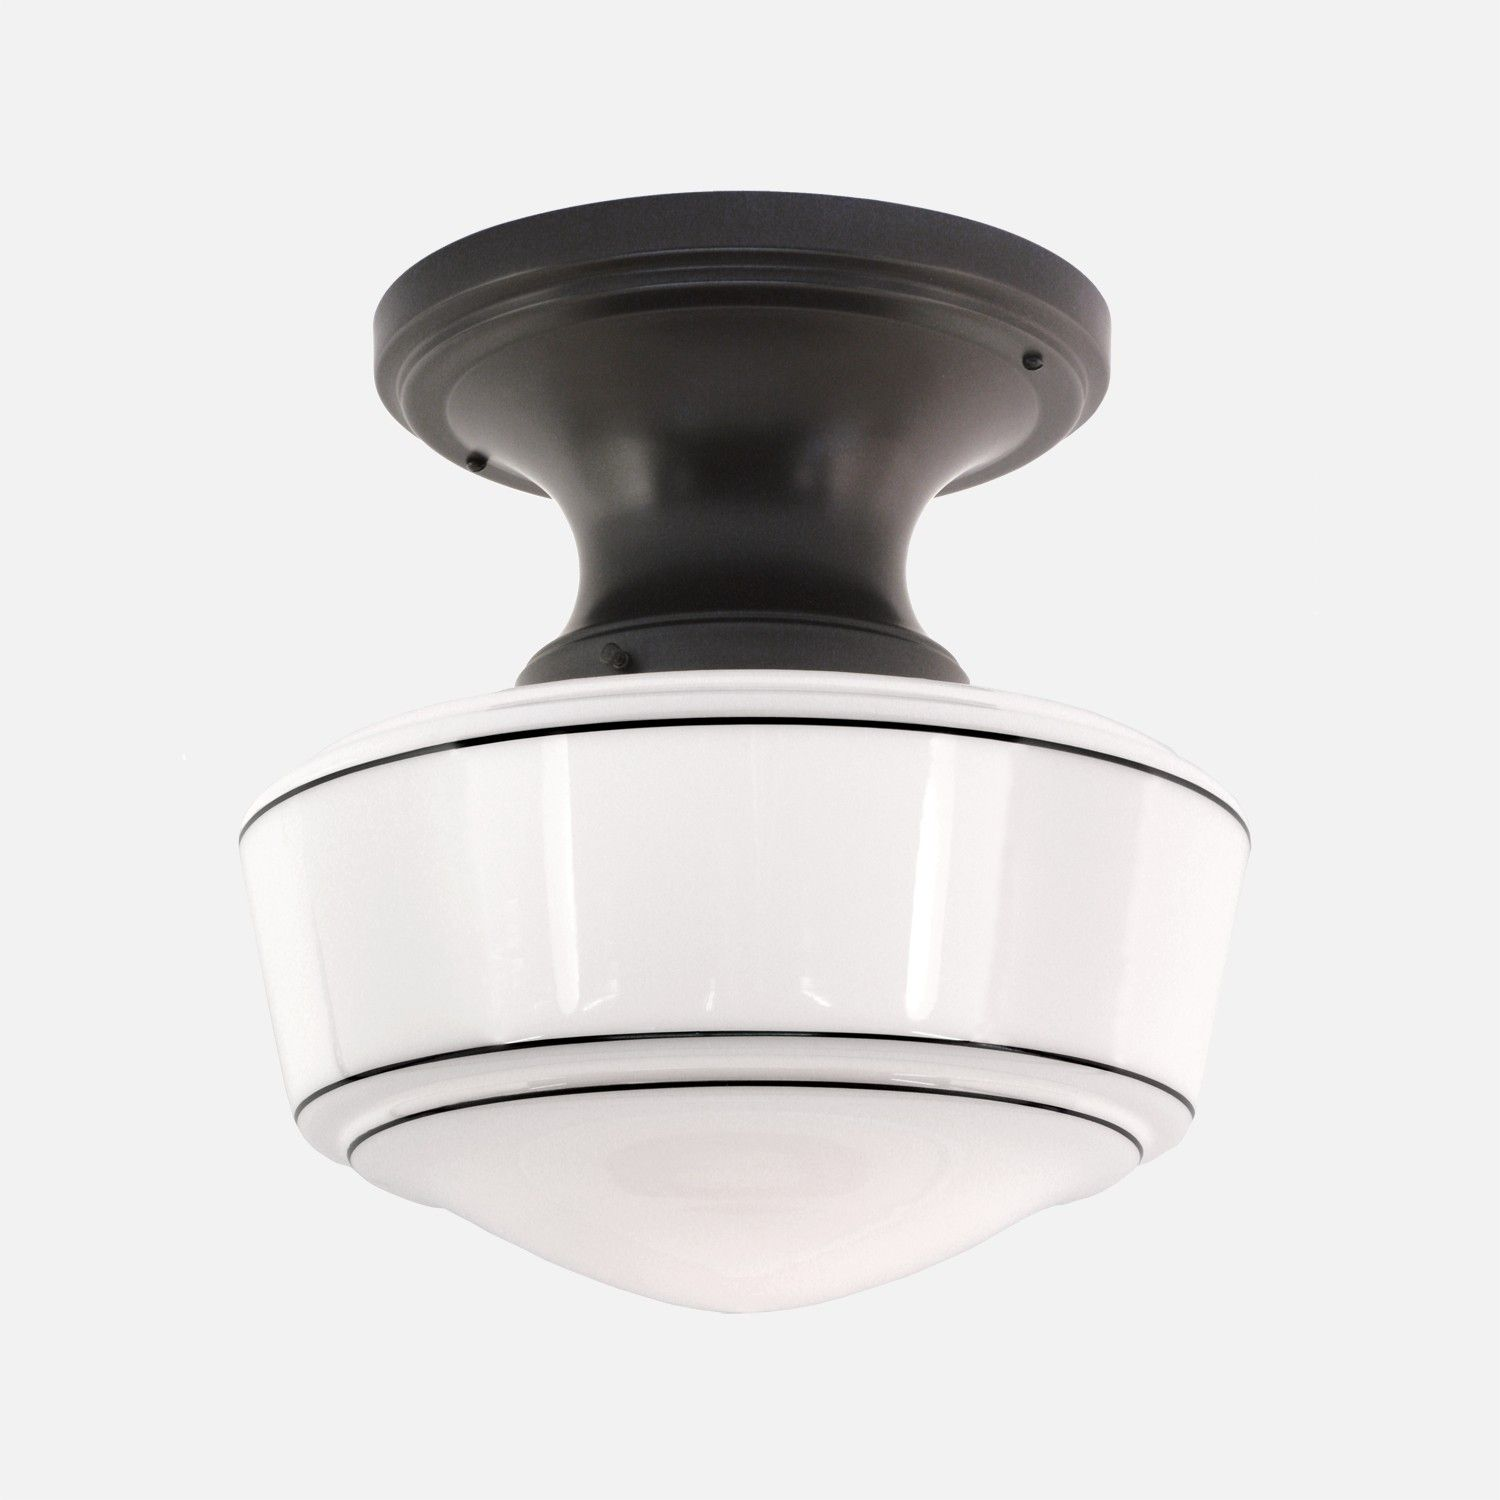 Marian Surface Mount Light Fixture